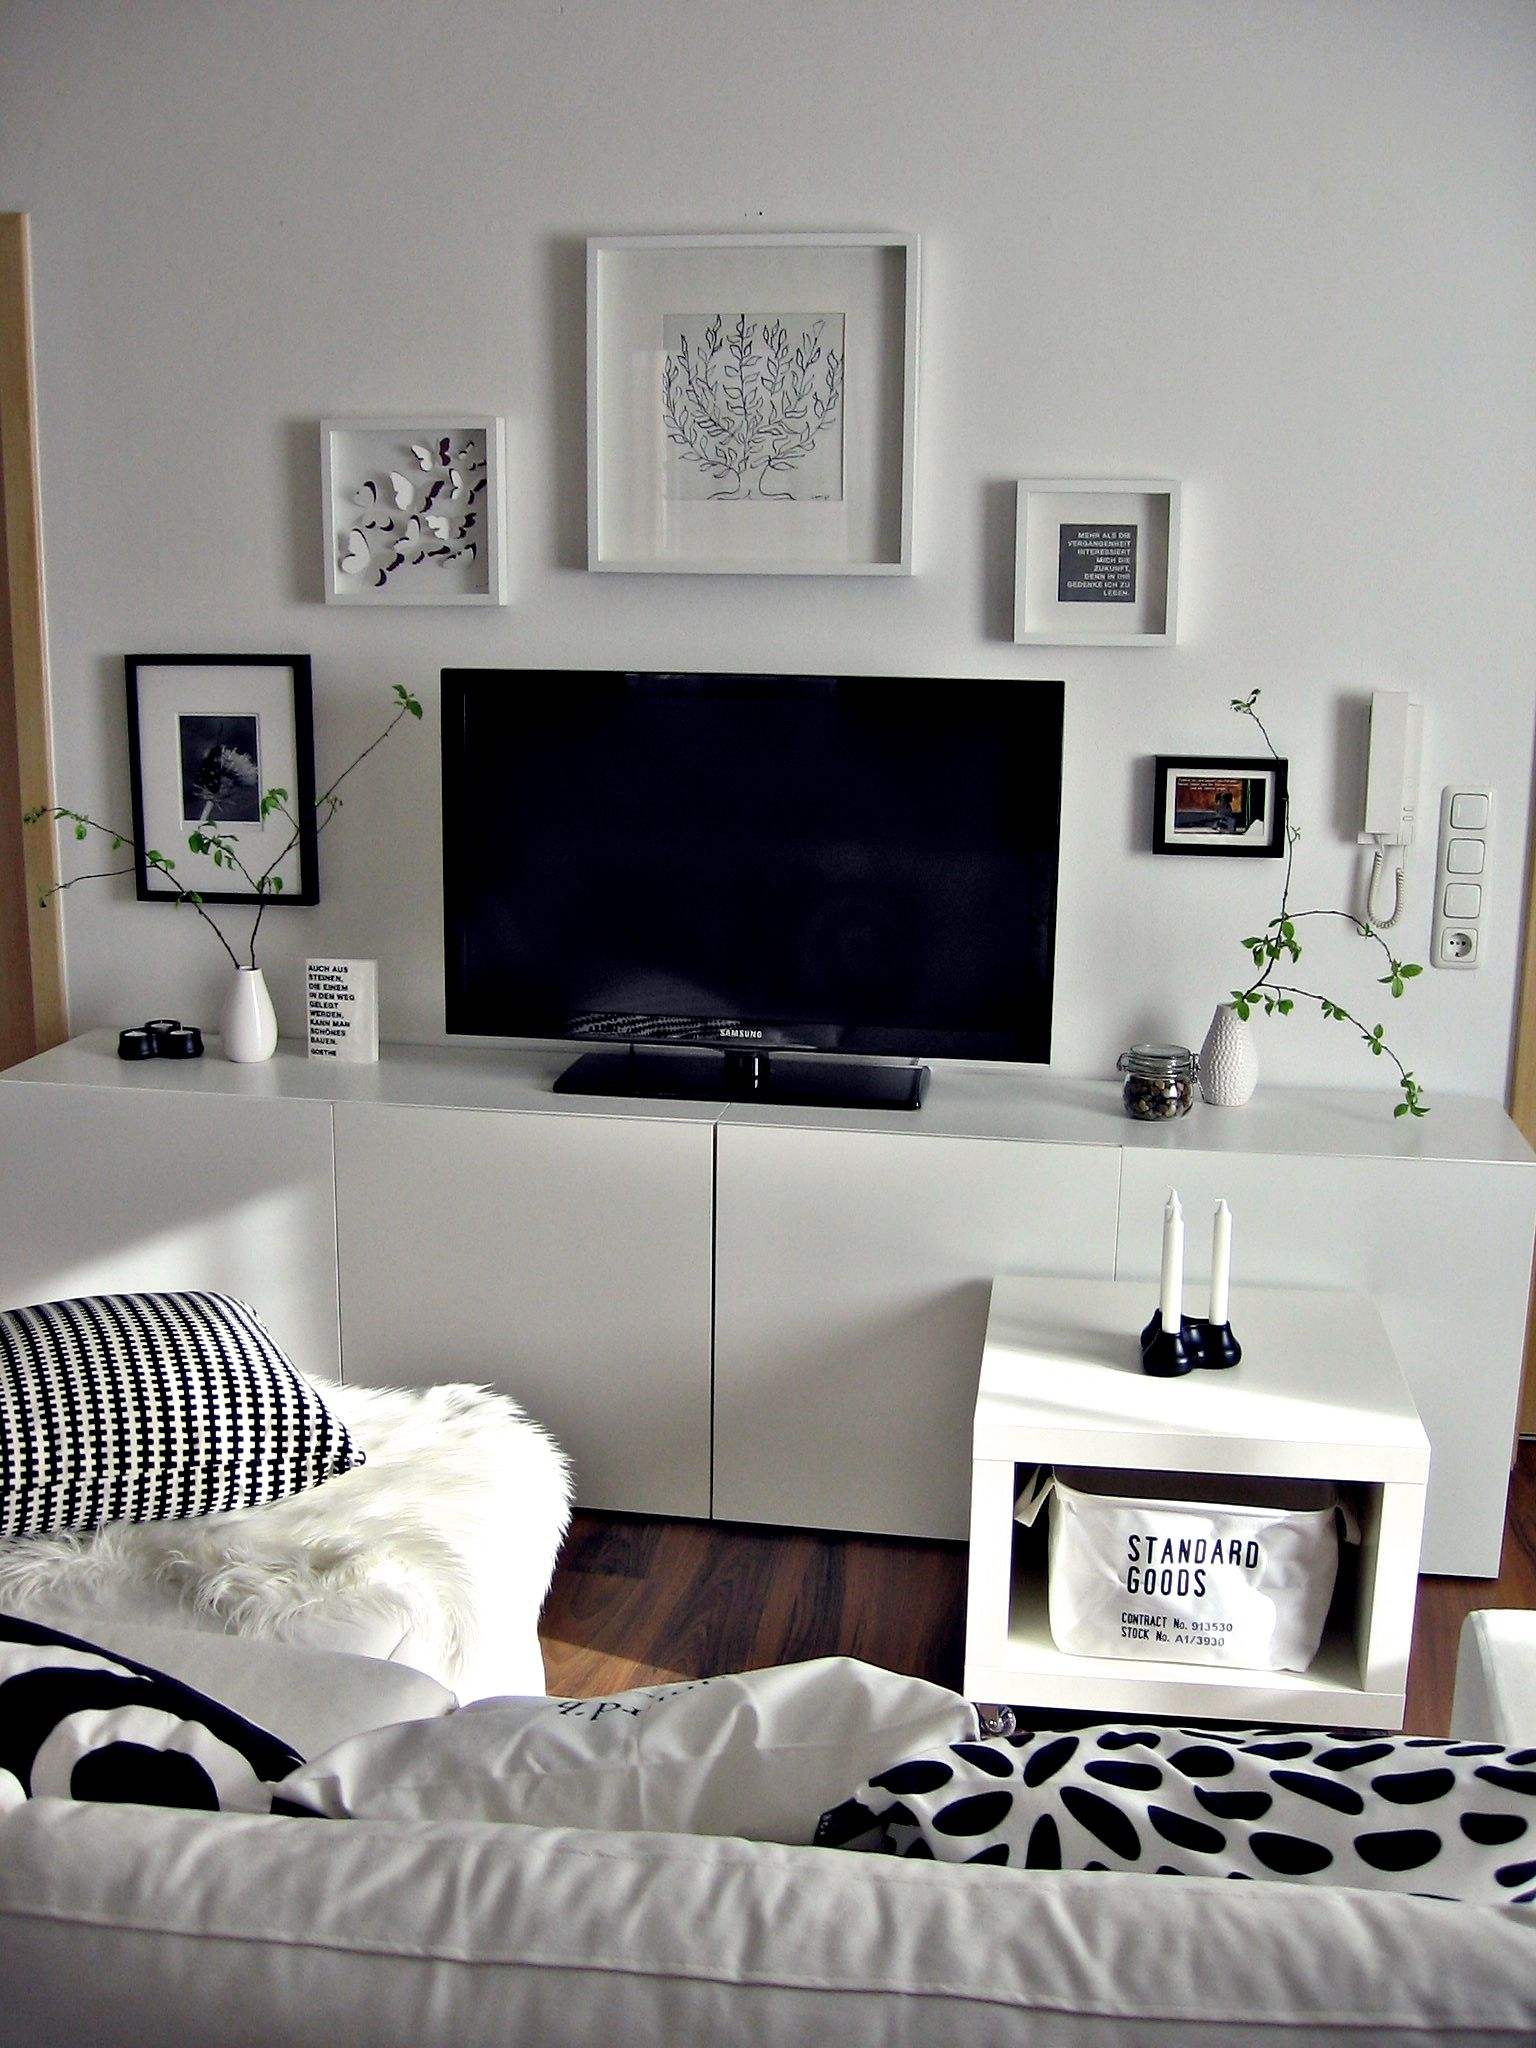 Wohnzimmer Einrichten Tv Framing The Tv Is Good Use Of Wall Space Wall Art Home Living